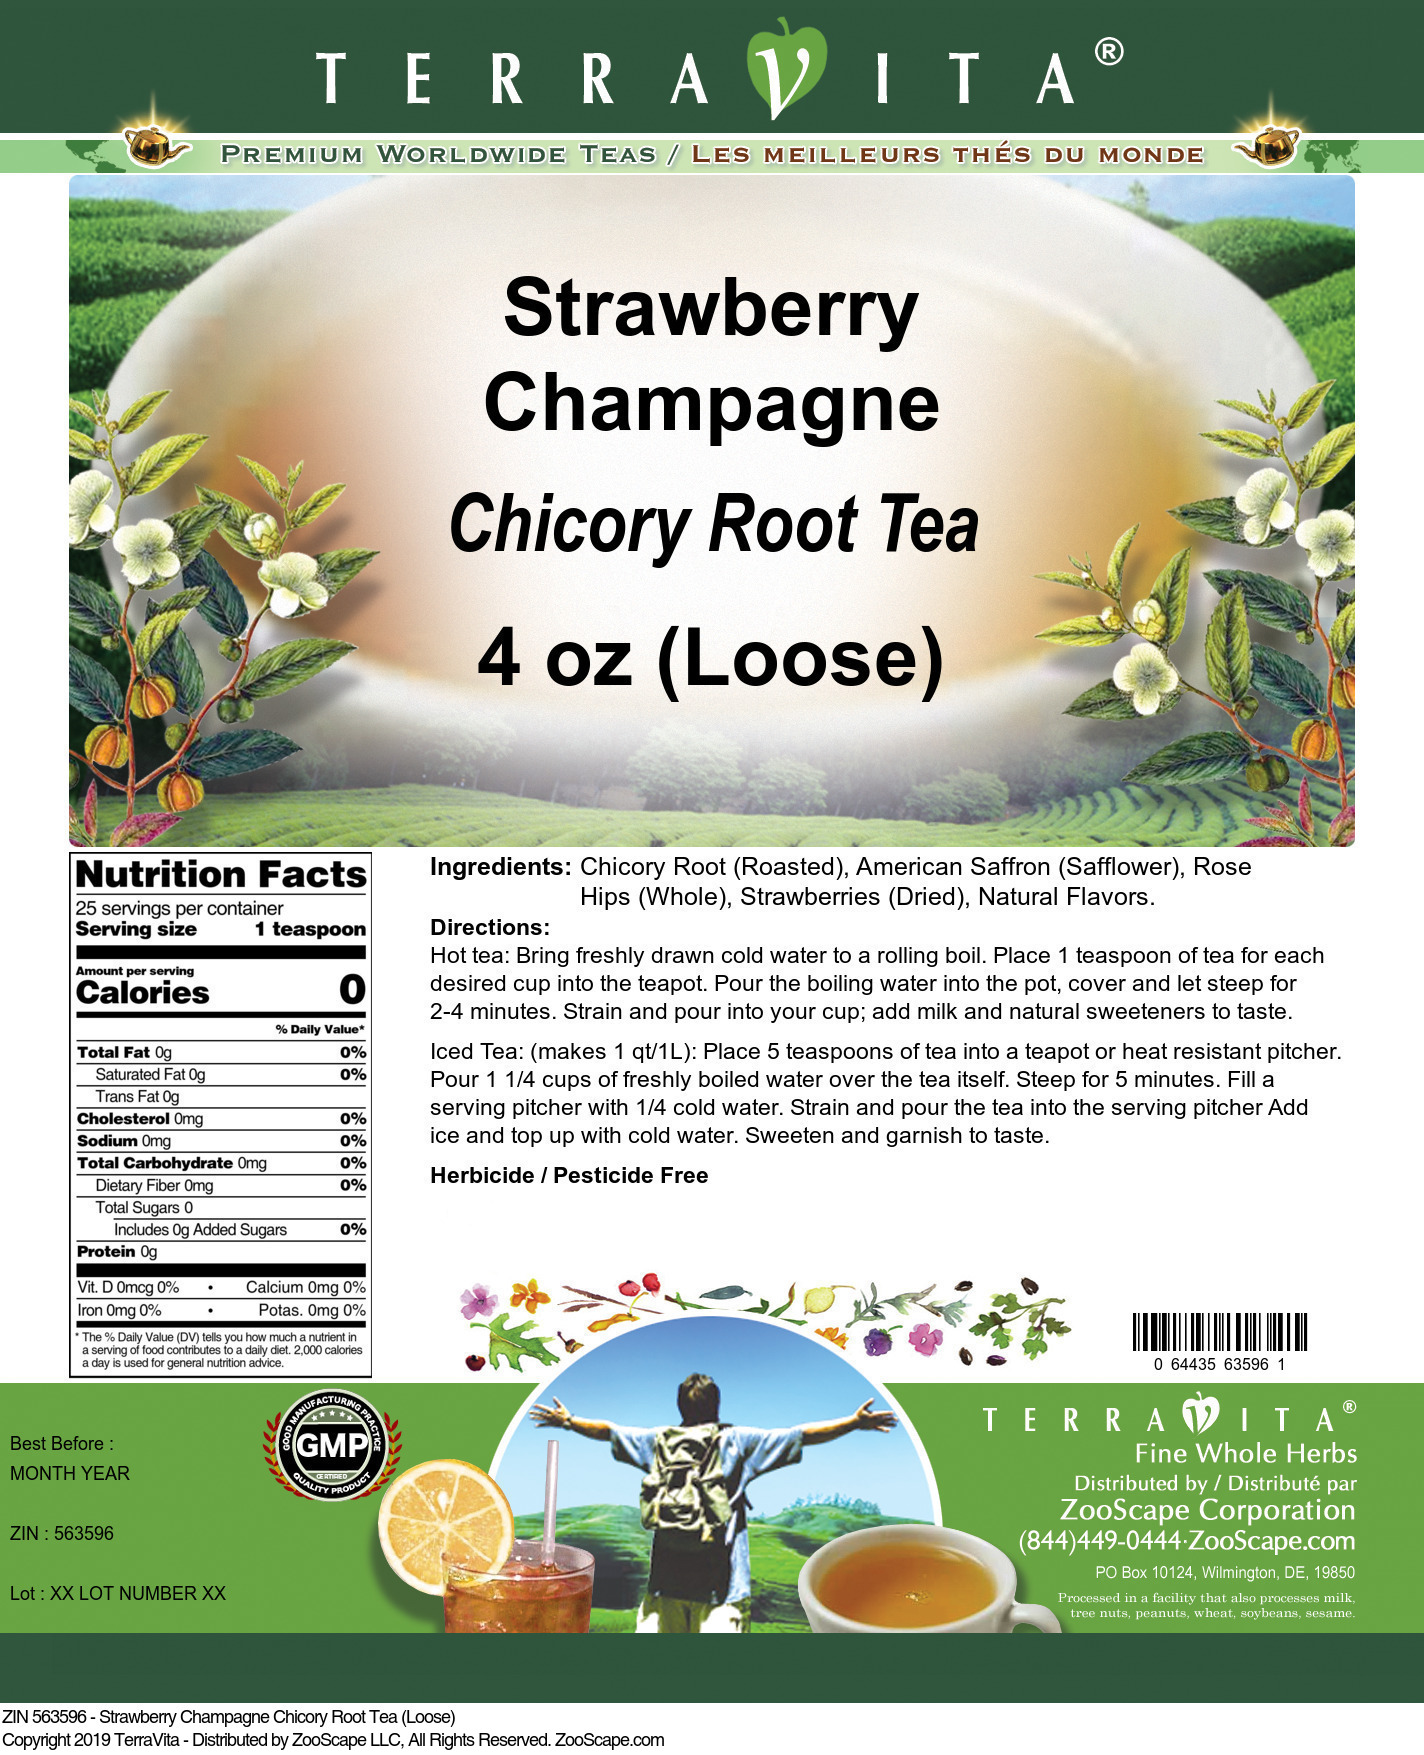 Strawberry Champagne Chicory Root Tea (Loose)